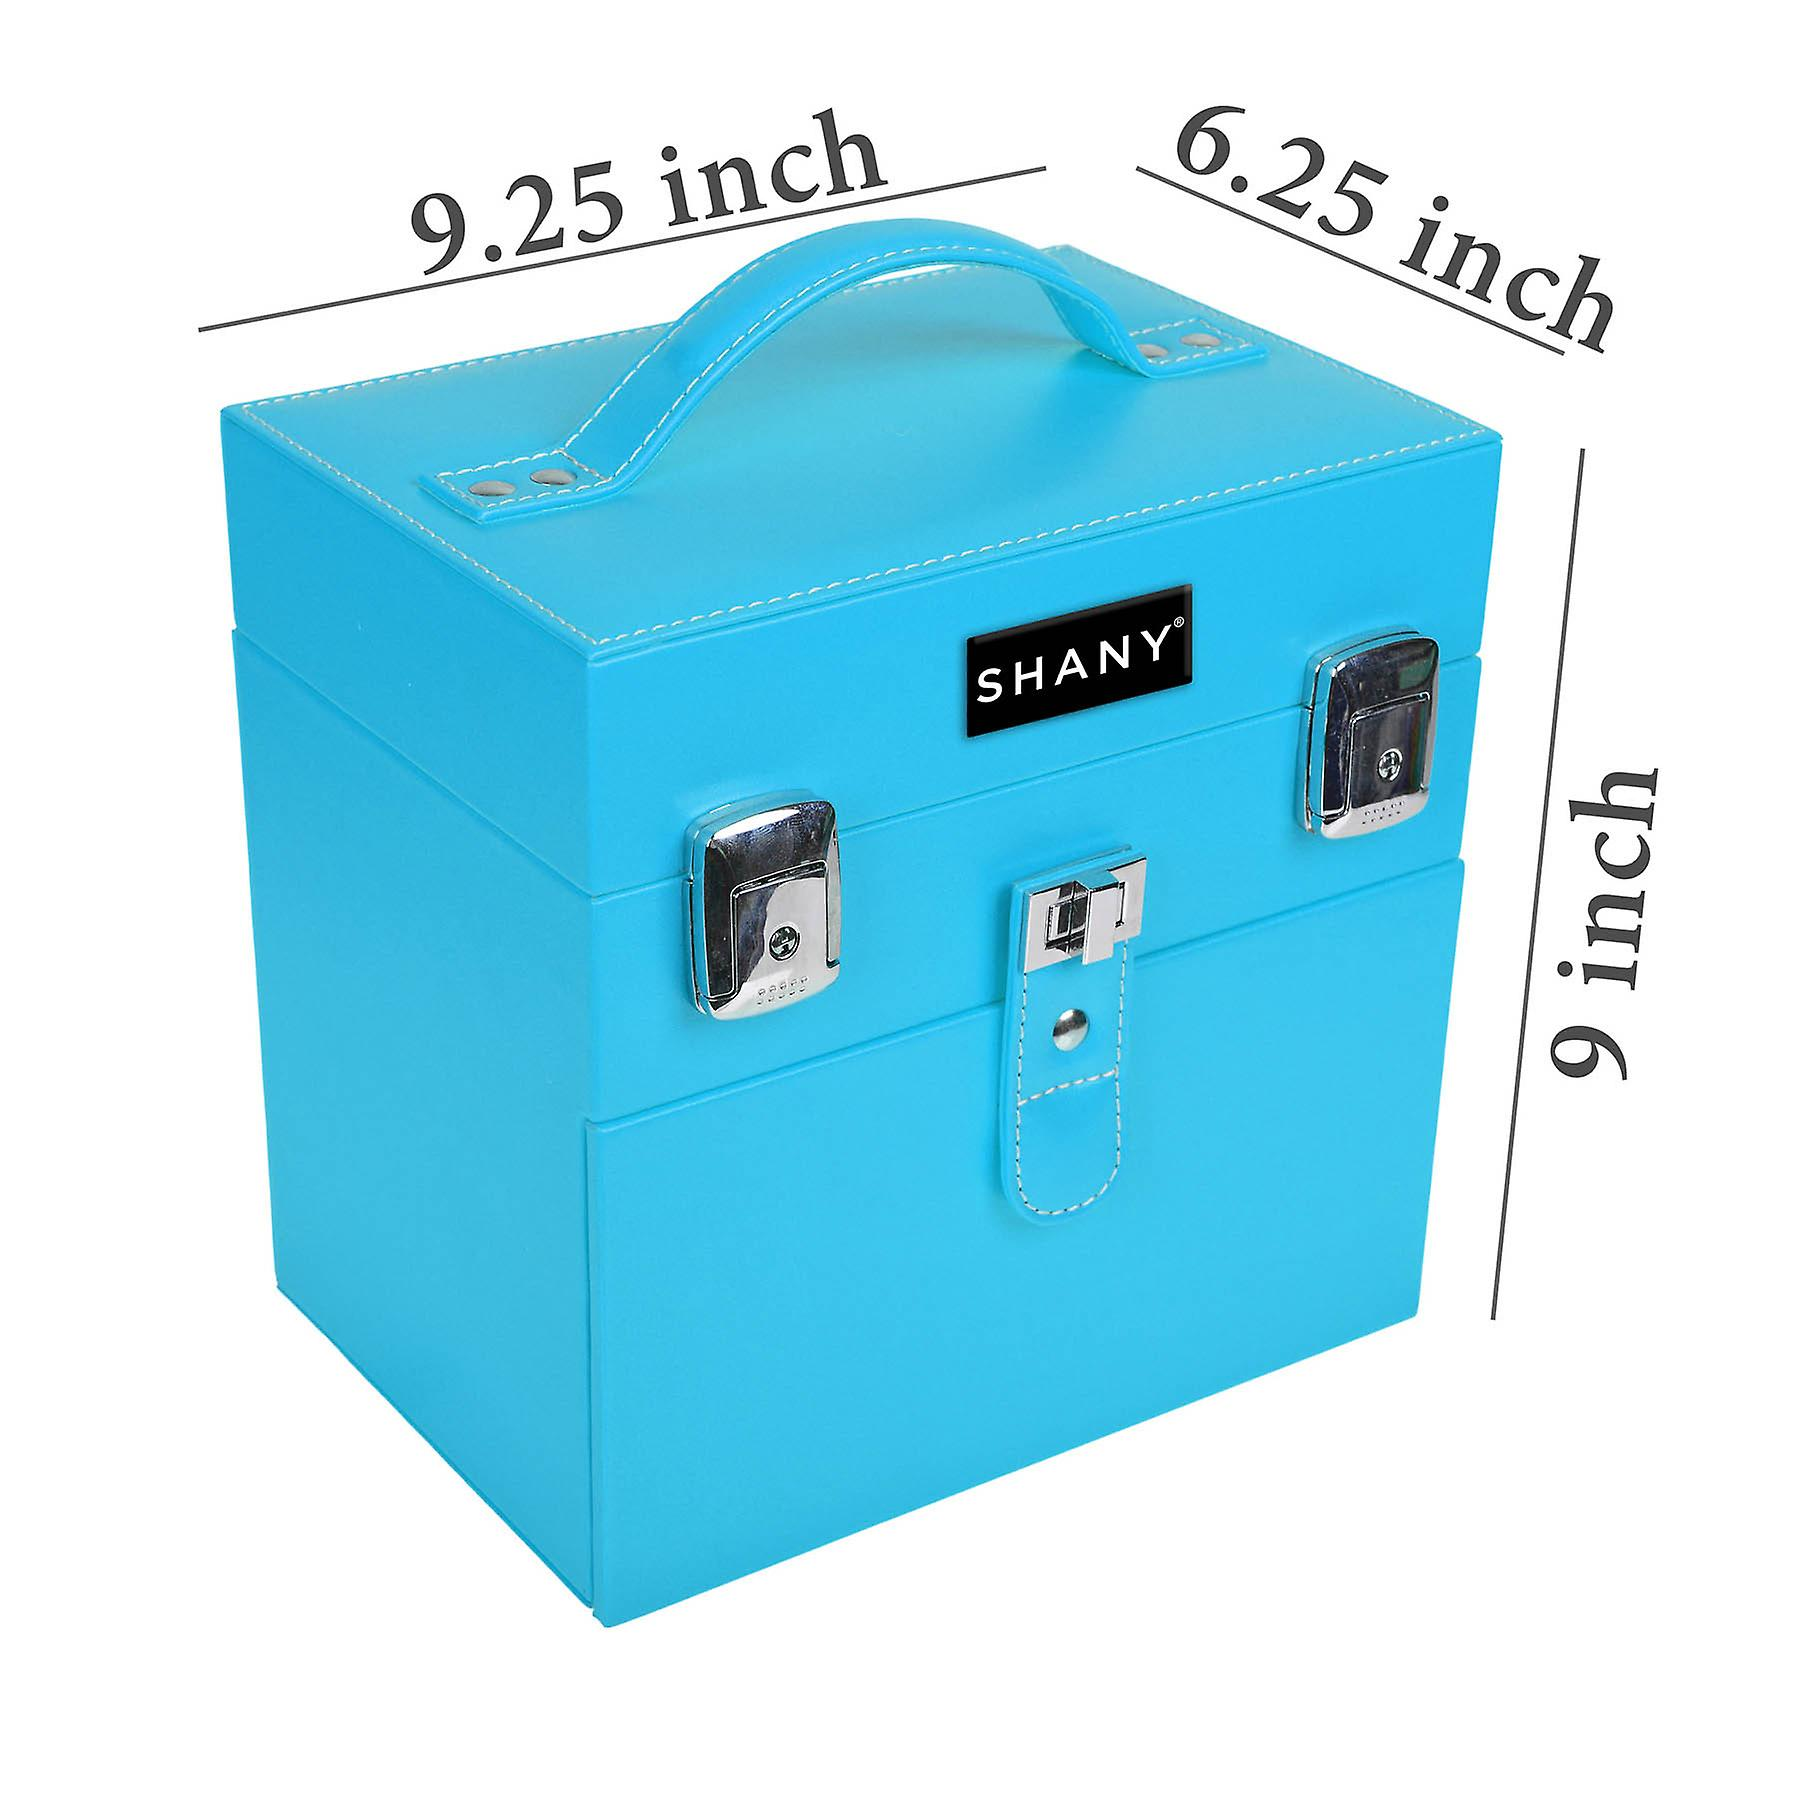 SHANY Color Matters - Nail Accessories Organisateur et Maquillage Train Case